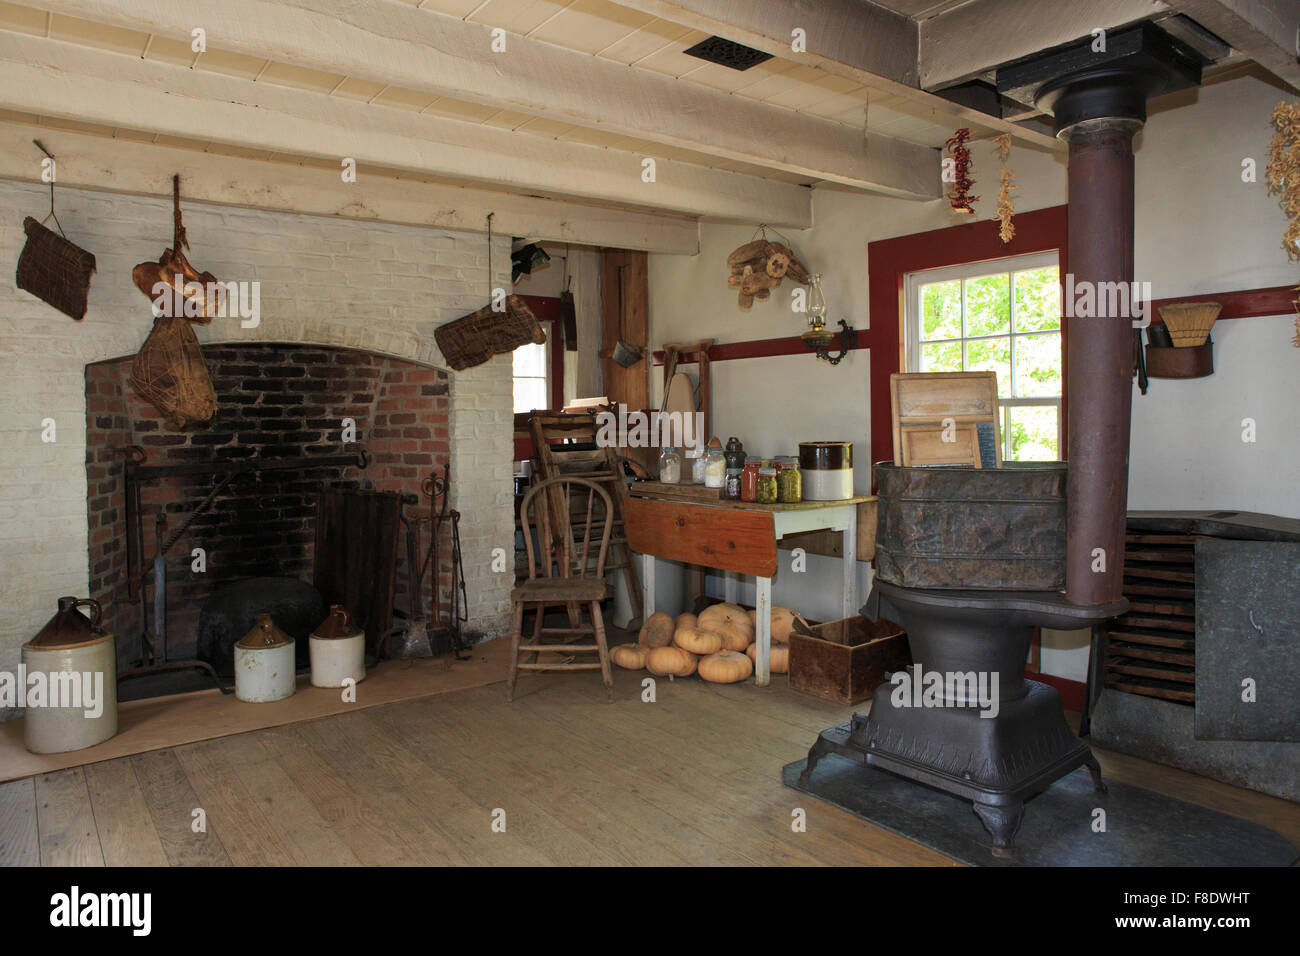 Summer Kitchen At An Old Farmhouse Stock Photo 91274564